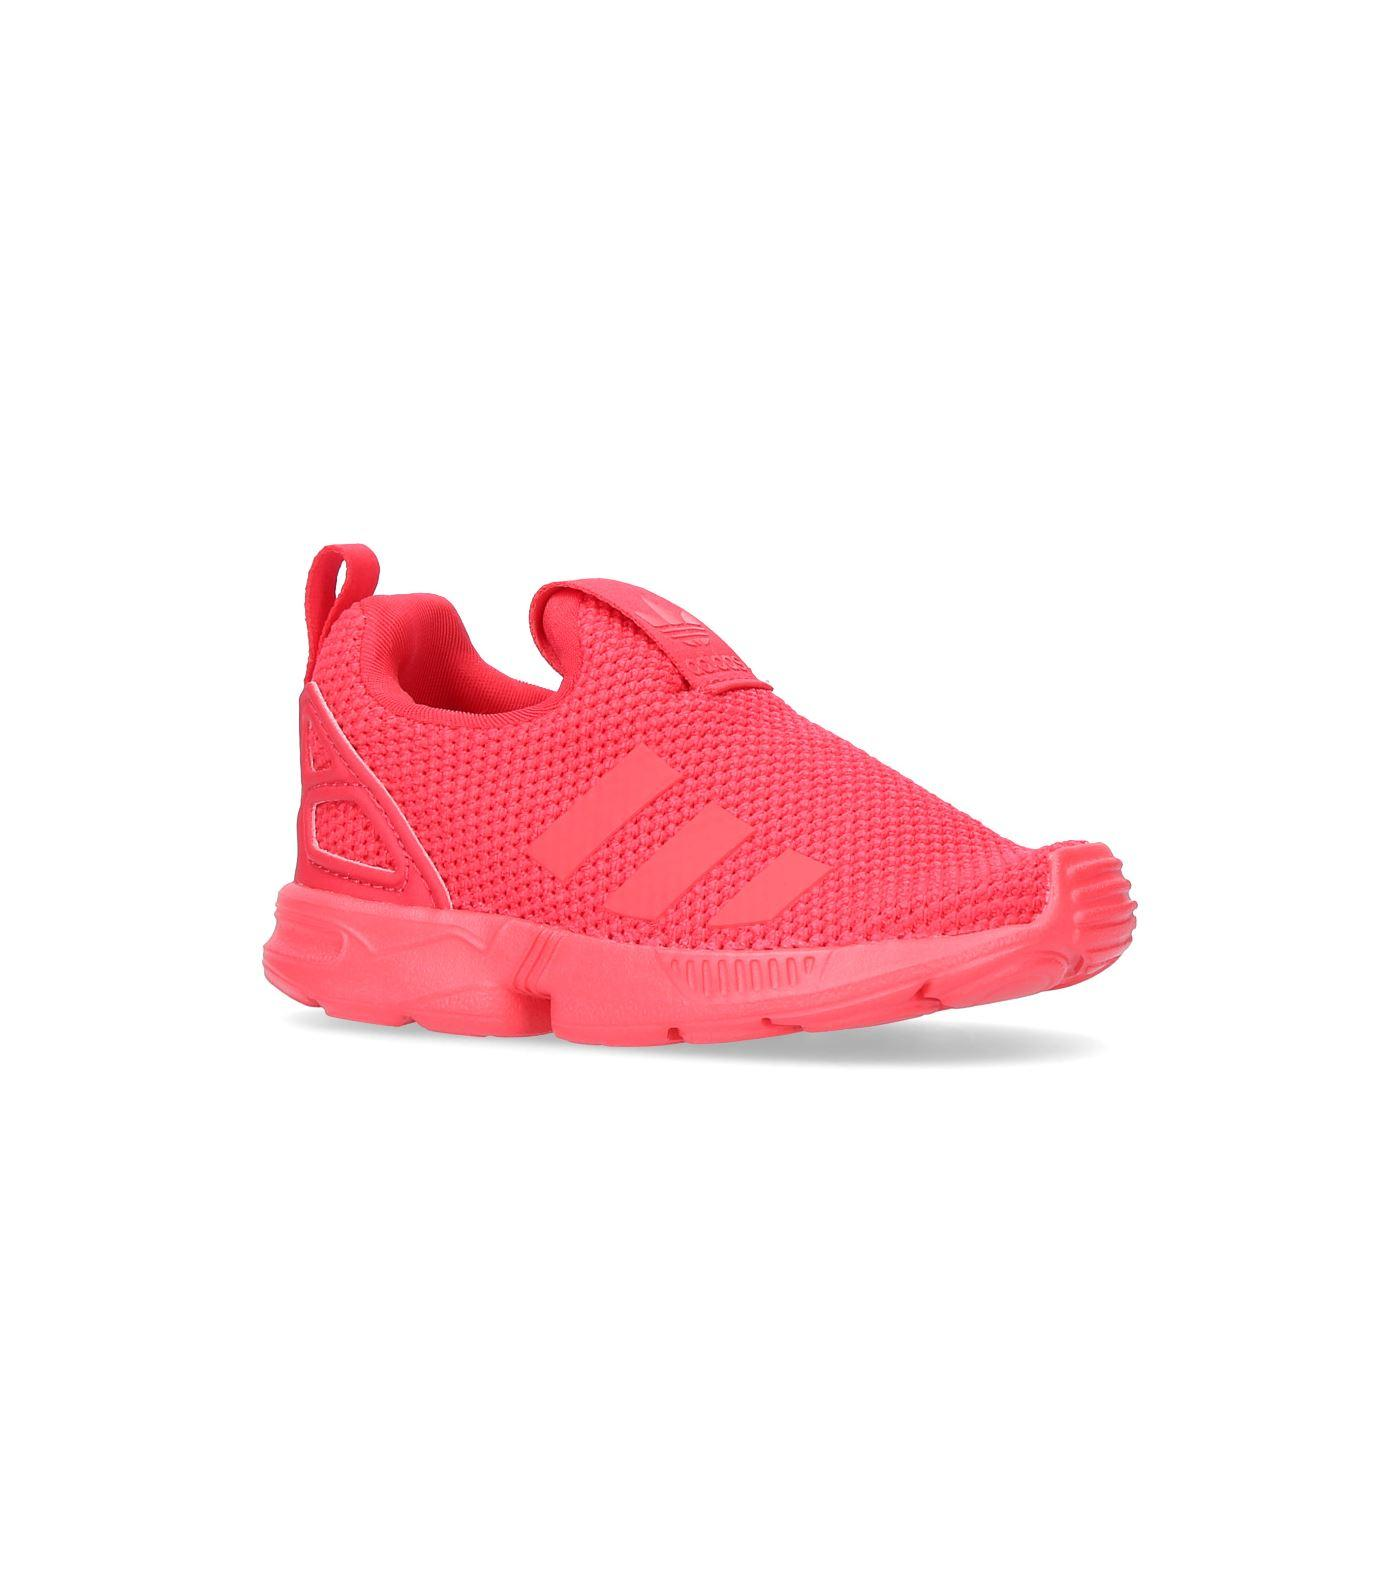 Adidas Originals Zx Flux 360 Sneakers In Red